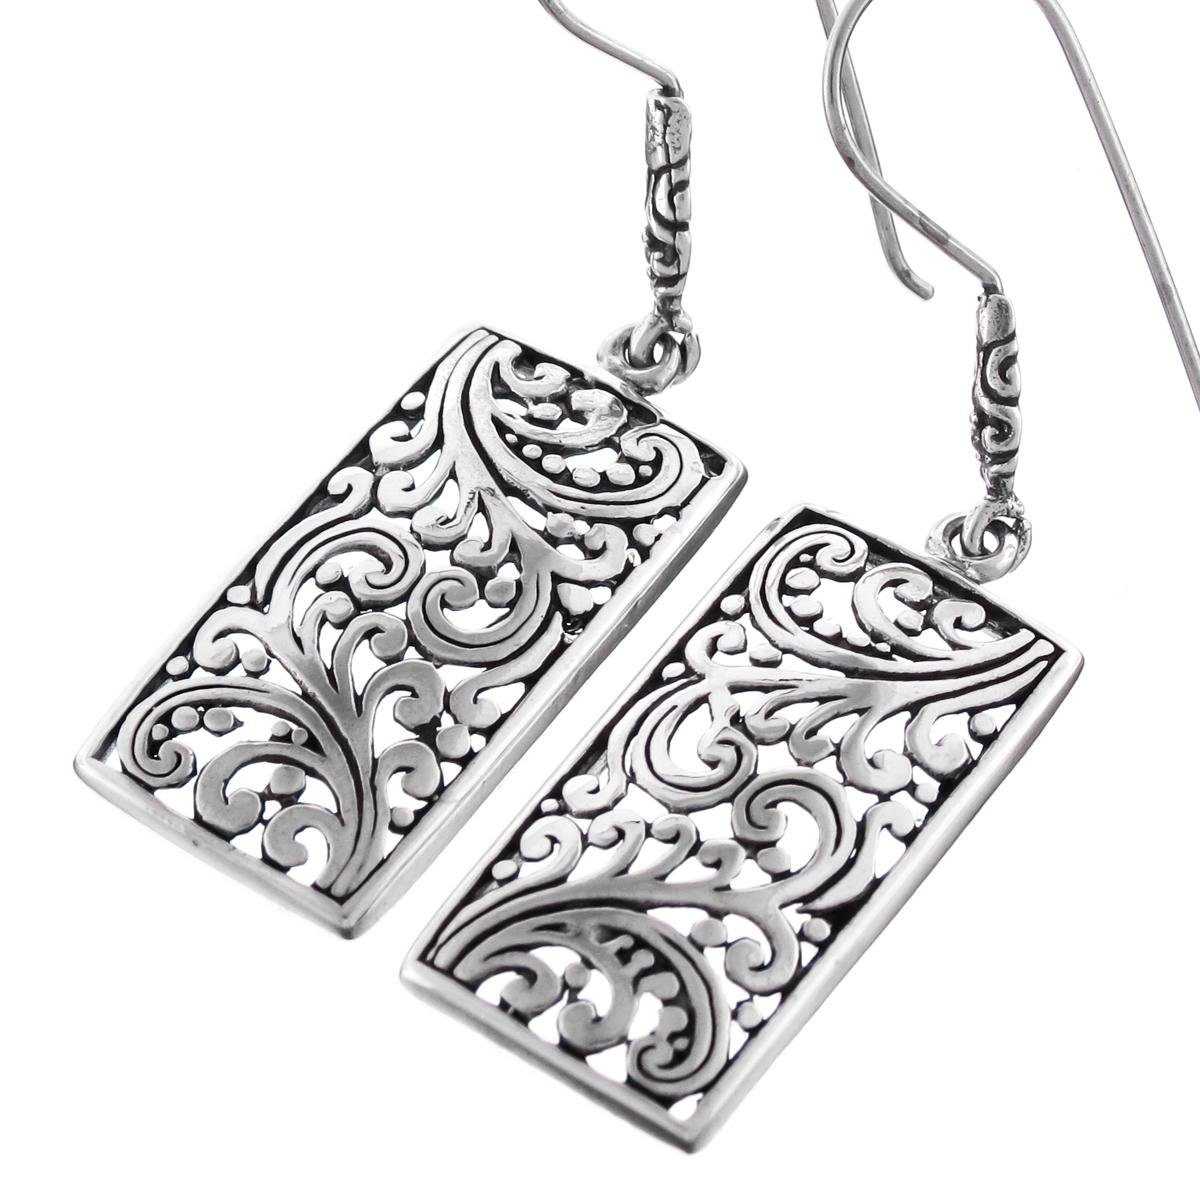 Bali Scrollwork Filigree Rectangle 925 Sterling Silver French Wires Drop Earrings